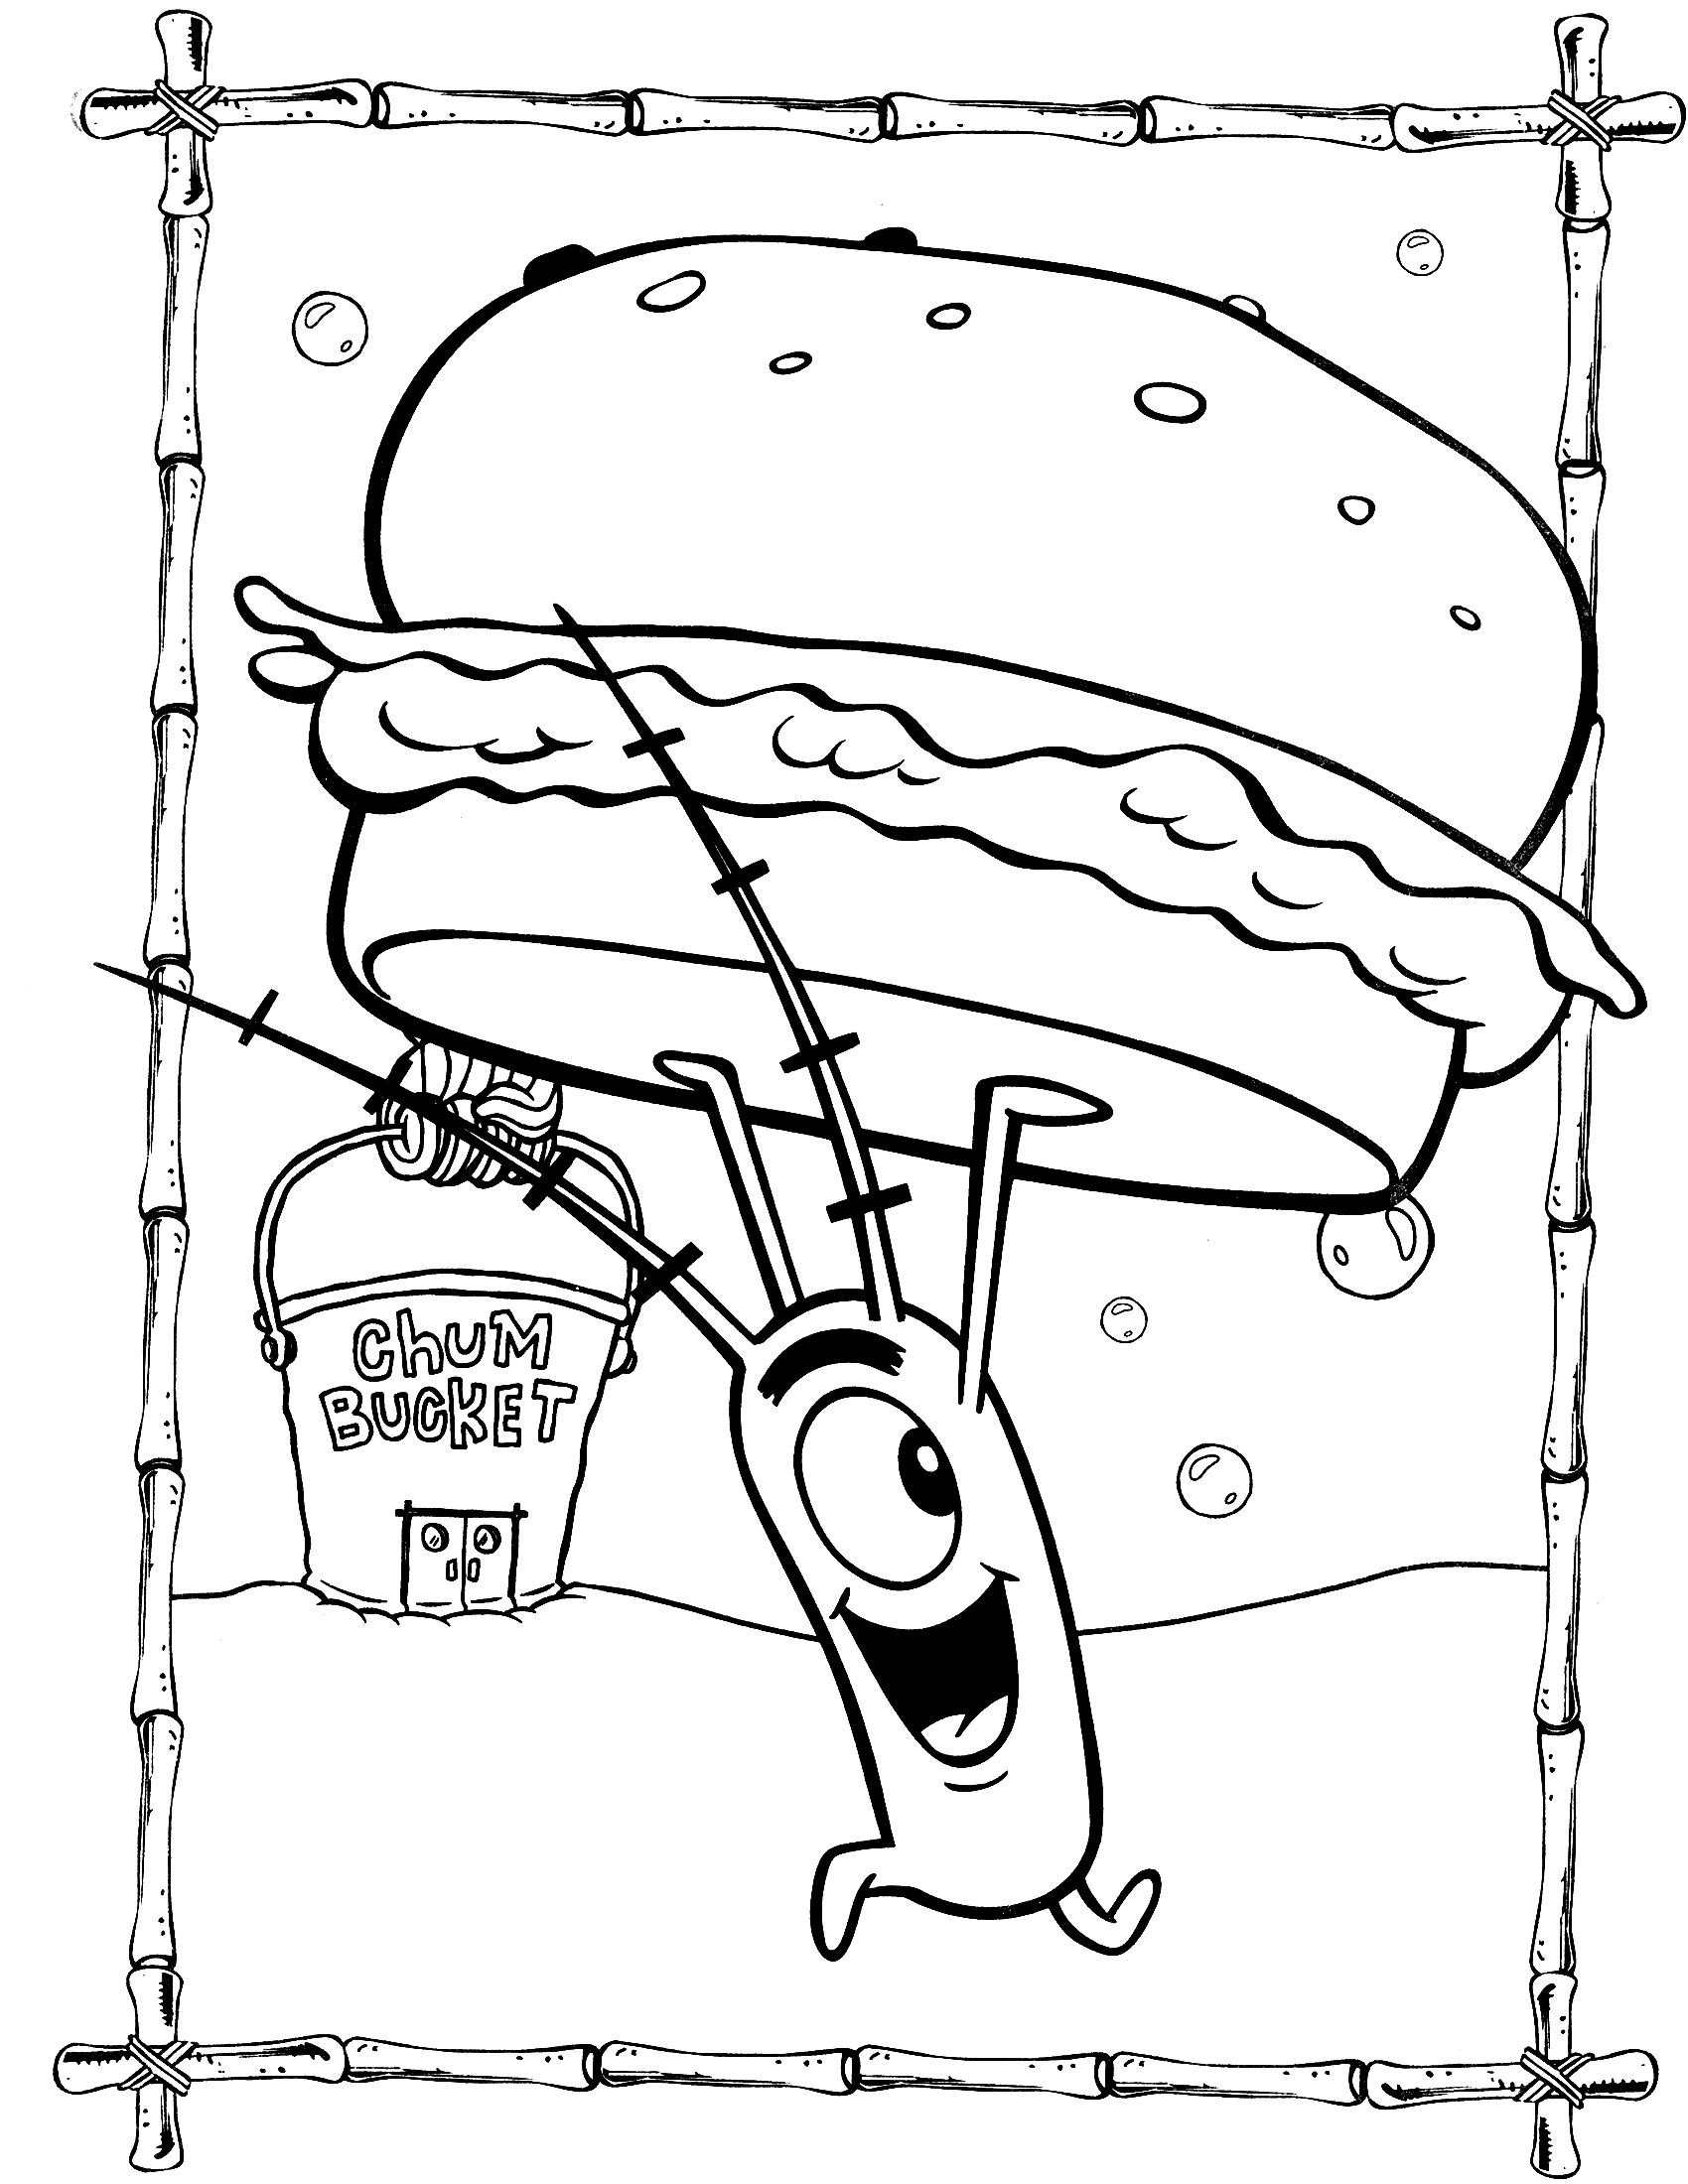 Spongebob Coloring Pages Plankton With Krabby Patty Spongebob